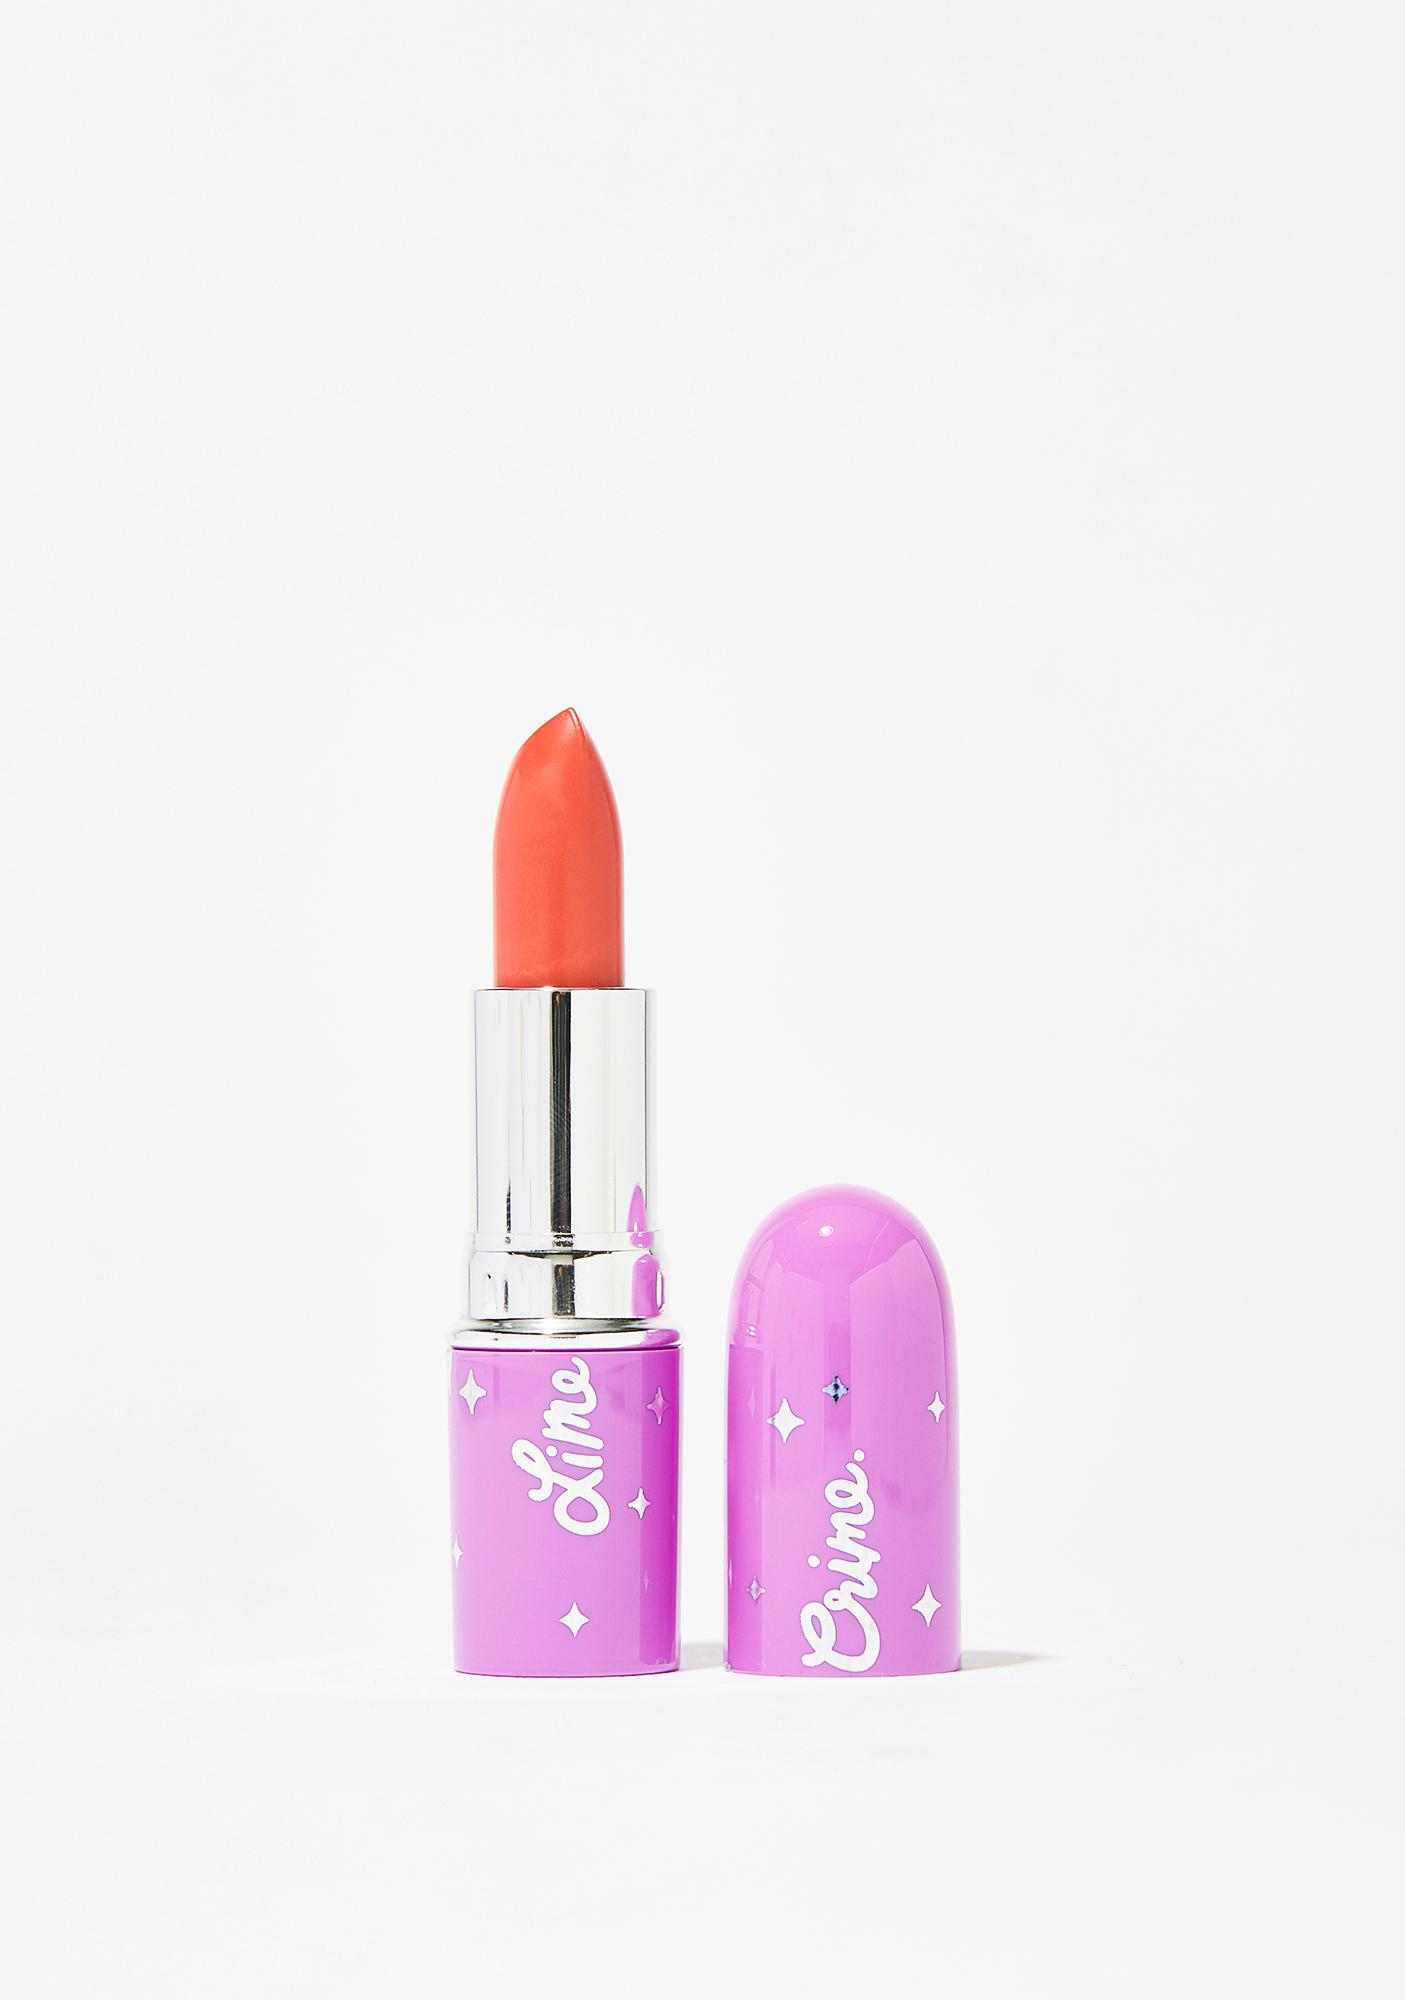 Lime Crime Not Another Peach Unicorn Lipstick